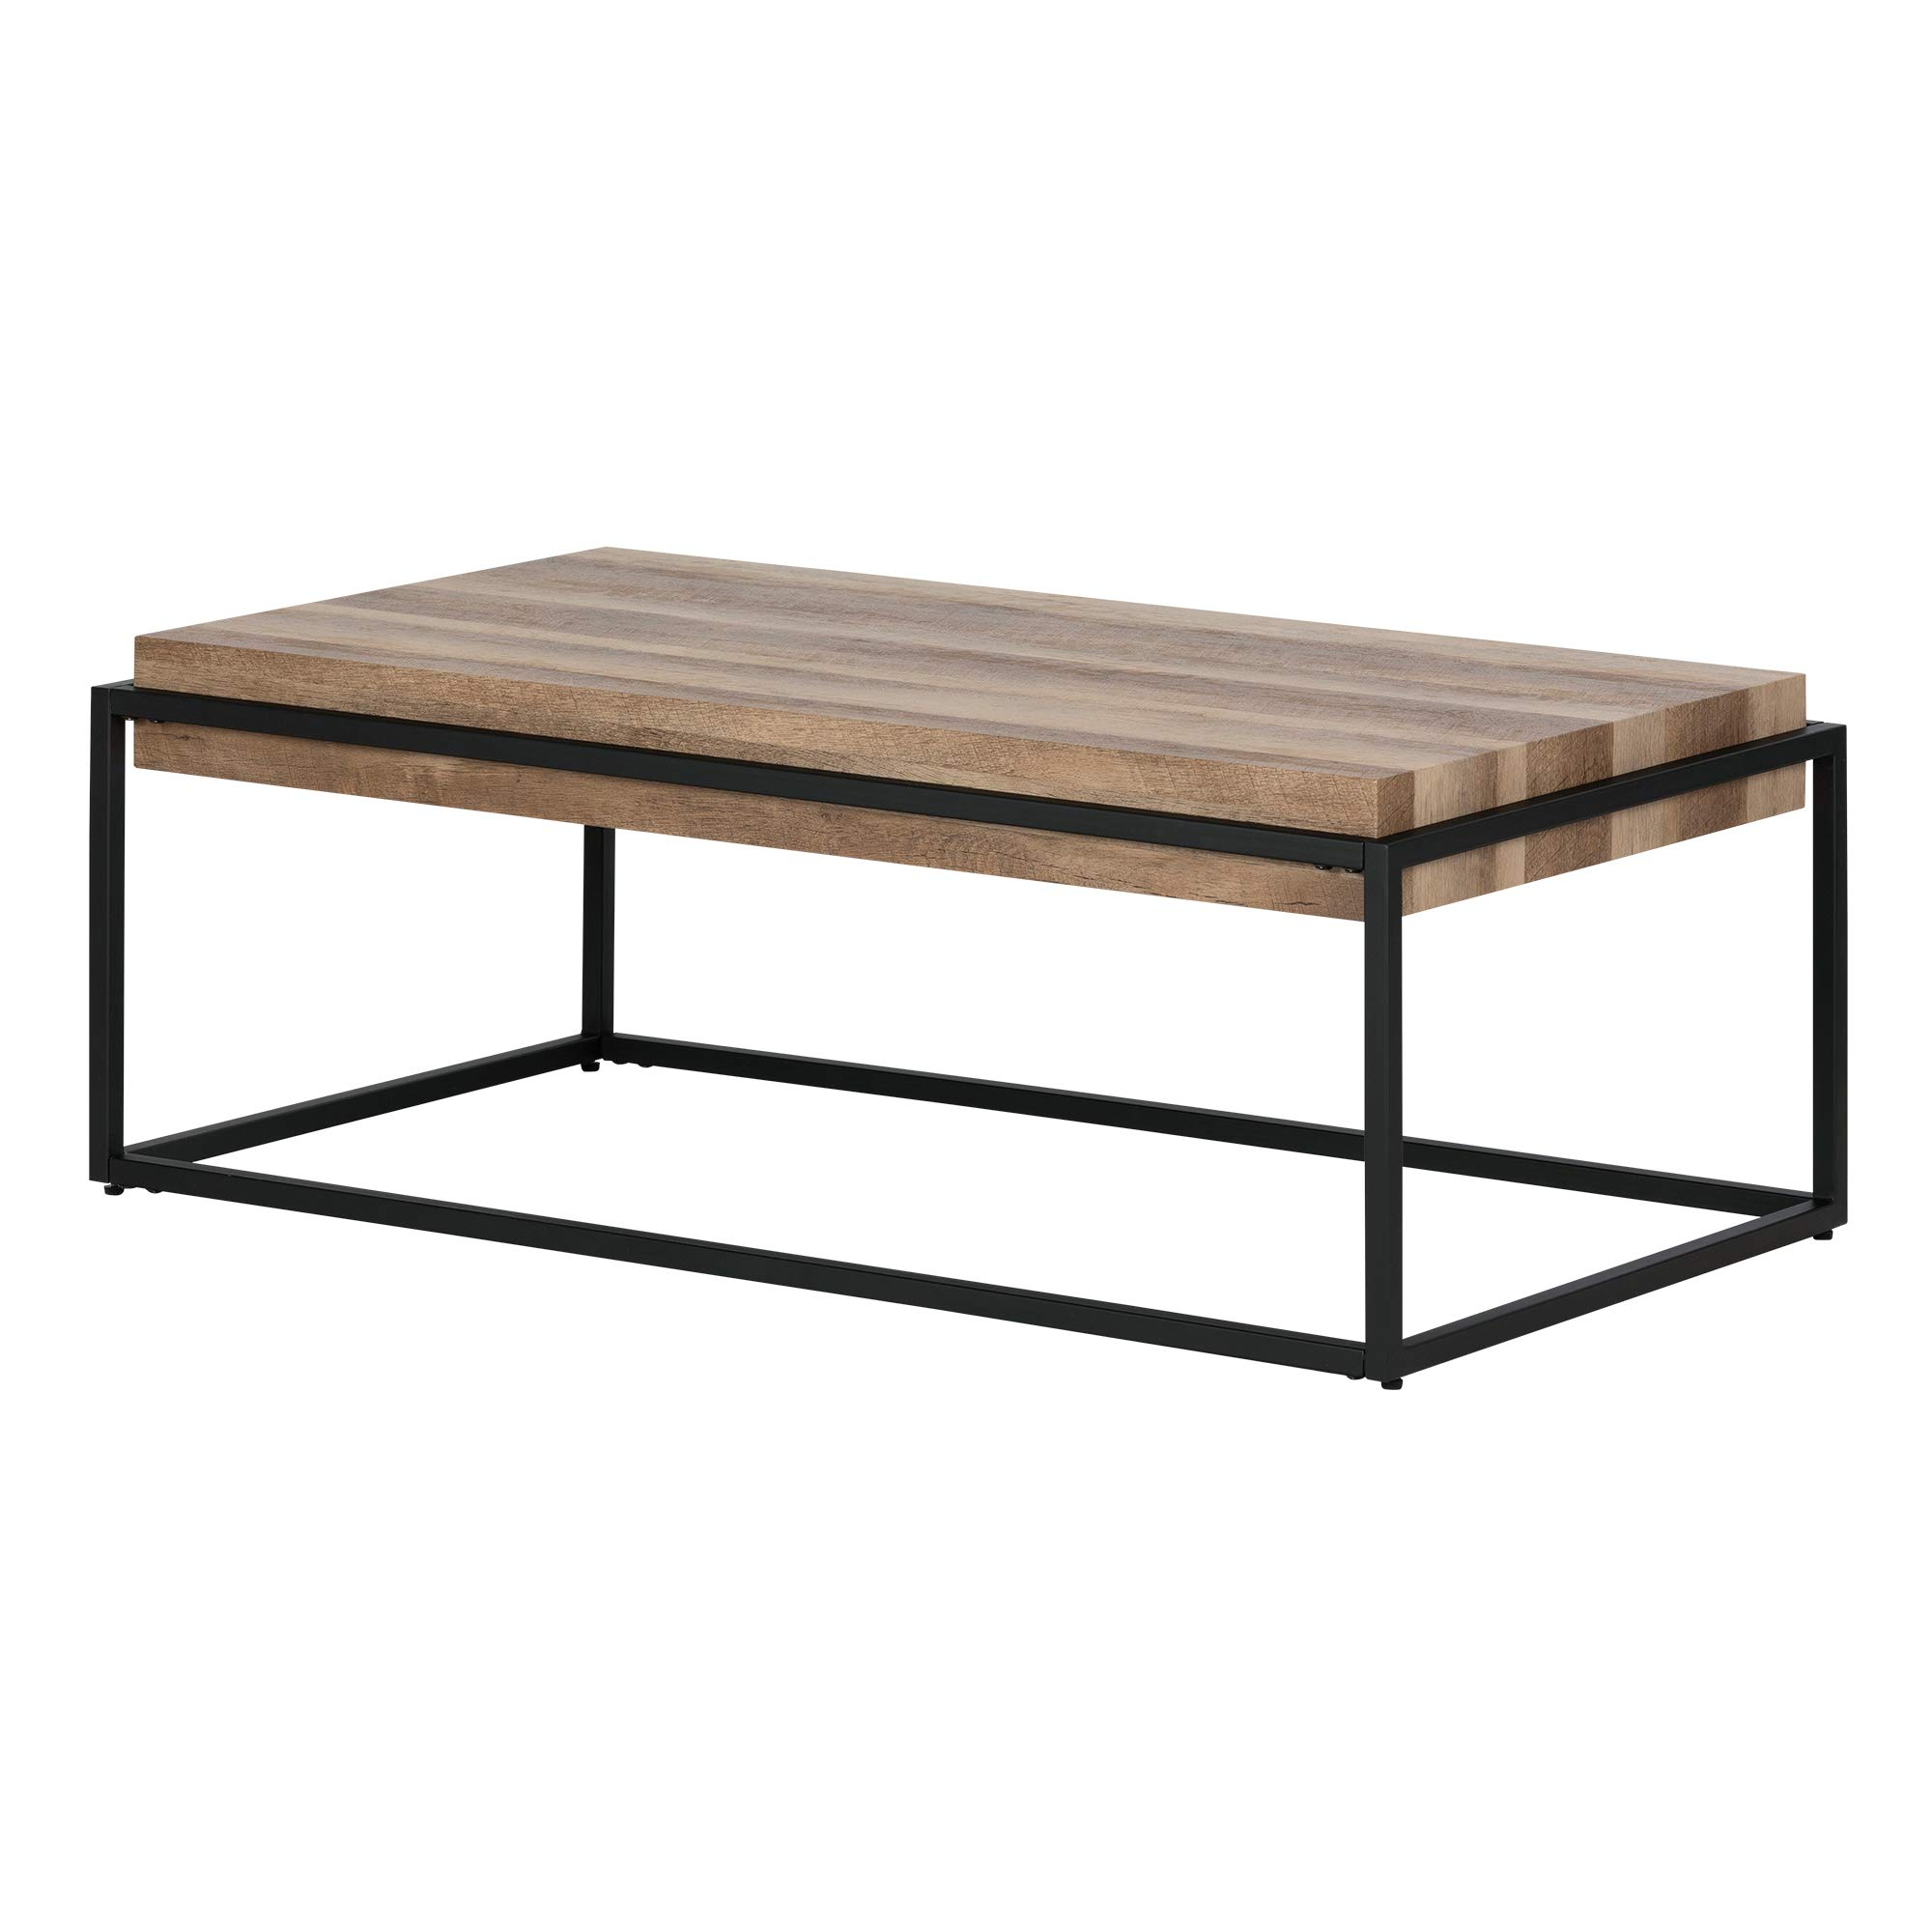 South Shore 12065 Mezzy, Barn Oak Industrial Coffee Table by South Shore